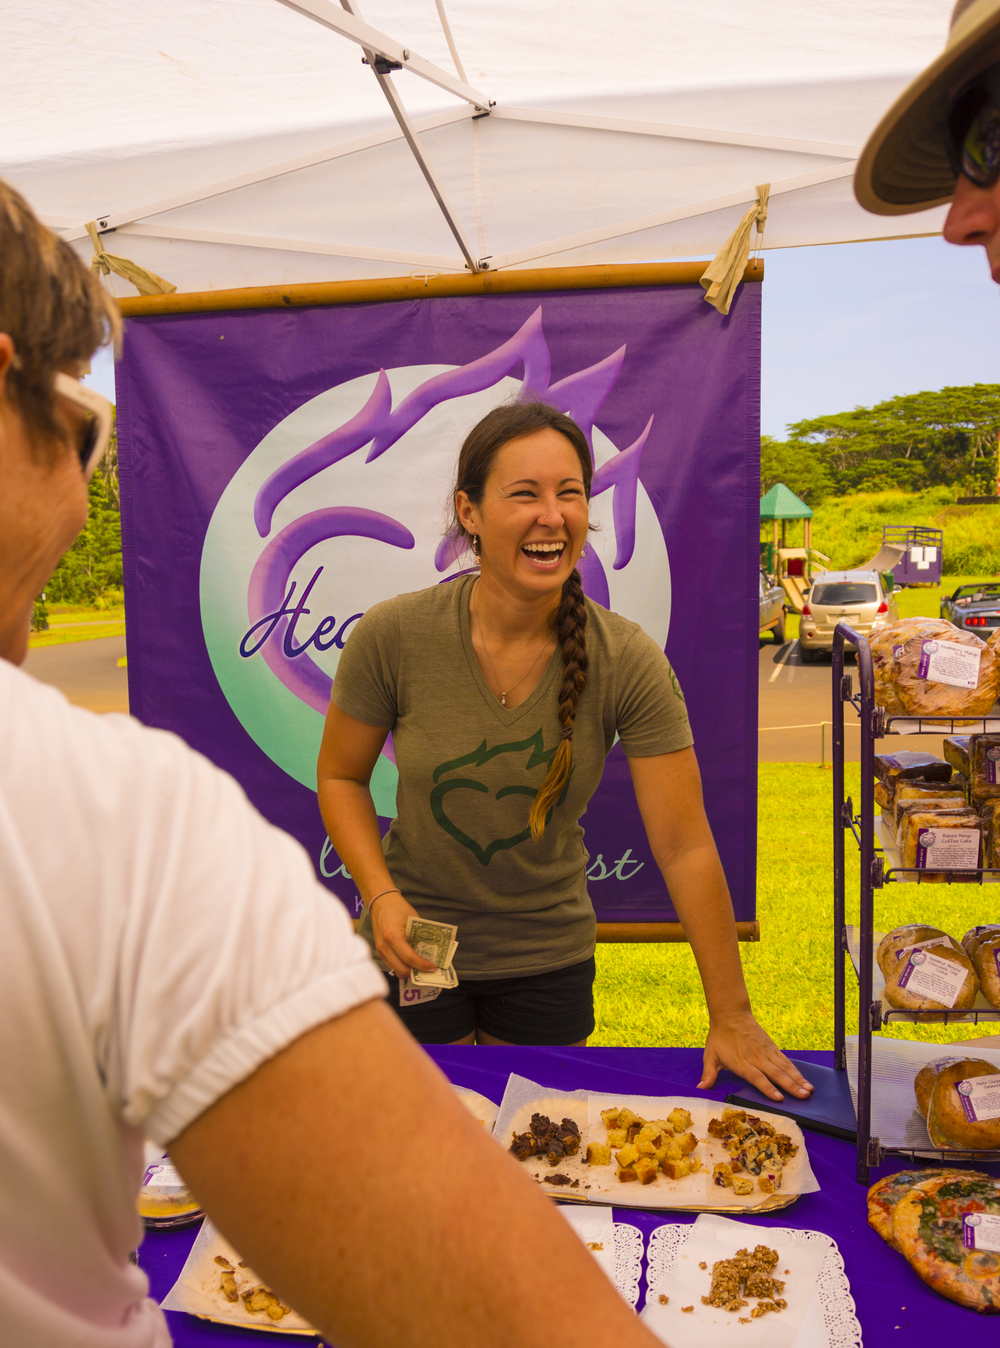 One of the wonderful folks from the Heart Flame Bakery at the Kilauea Farmers Market on Kauai.